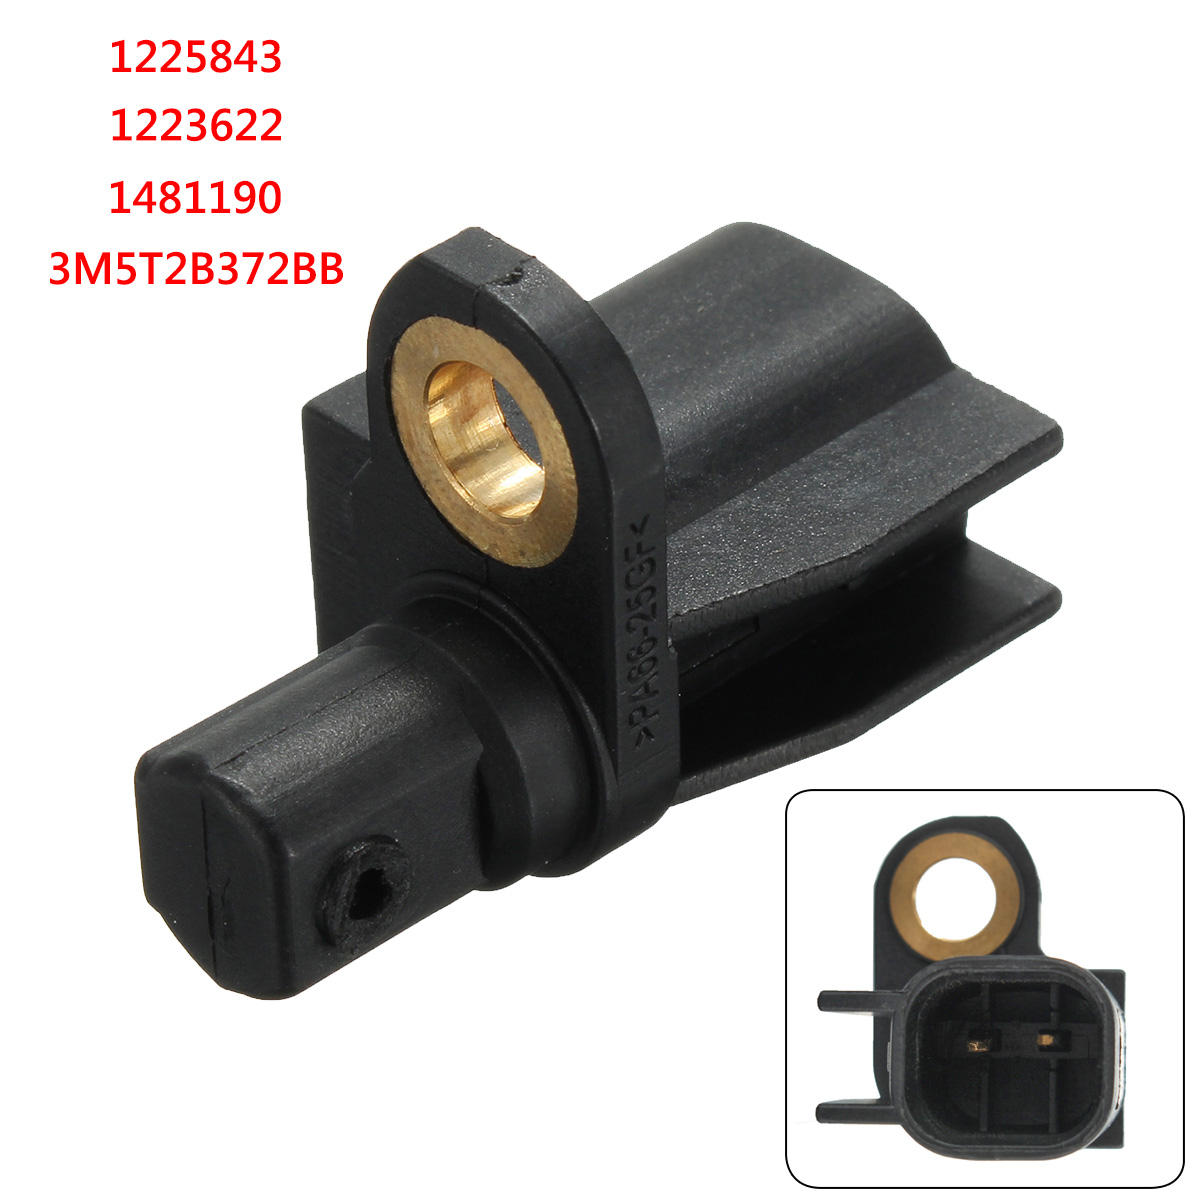 ABS Sensor Rear For Ford -Focus -Mondeo -C-Max -Galaxy -Mazda 3 1225843 1223622